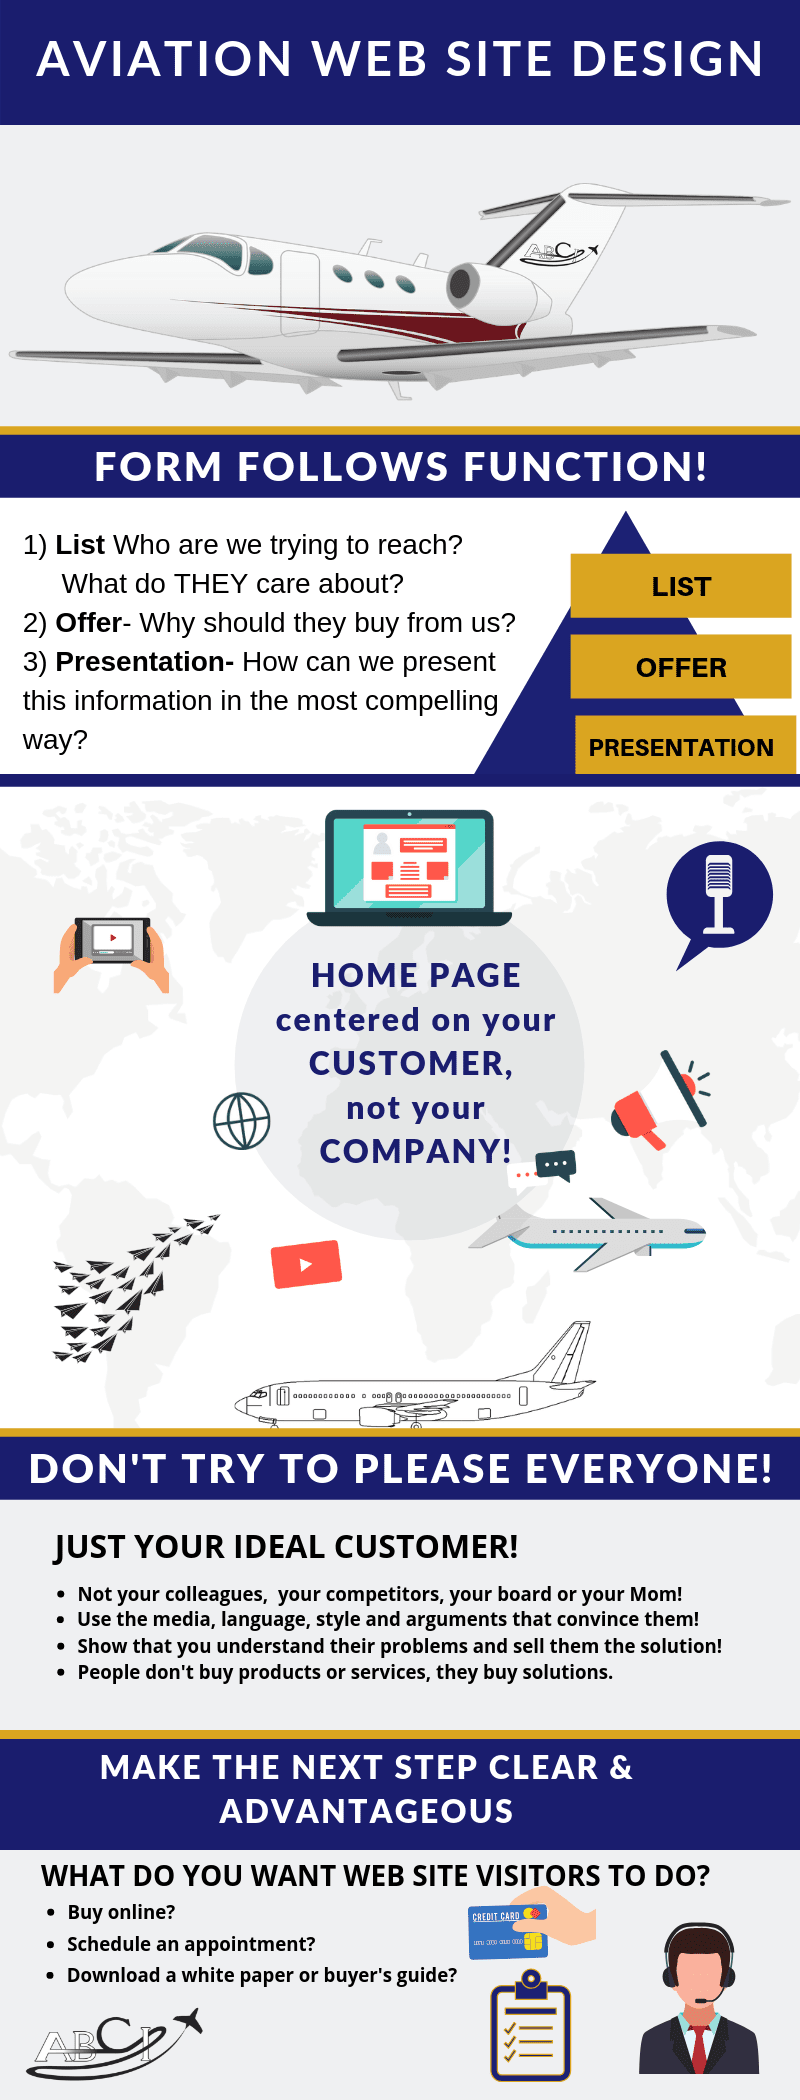 AMHF 0085 - Aviation Website Design - What Works?